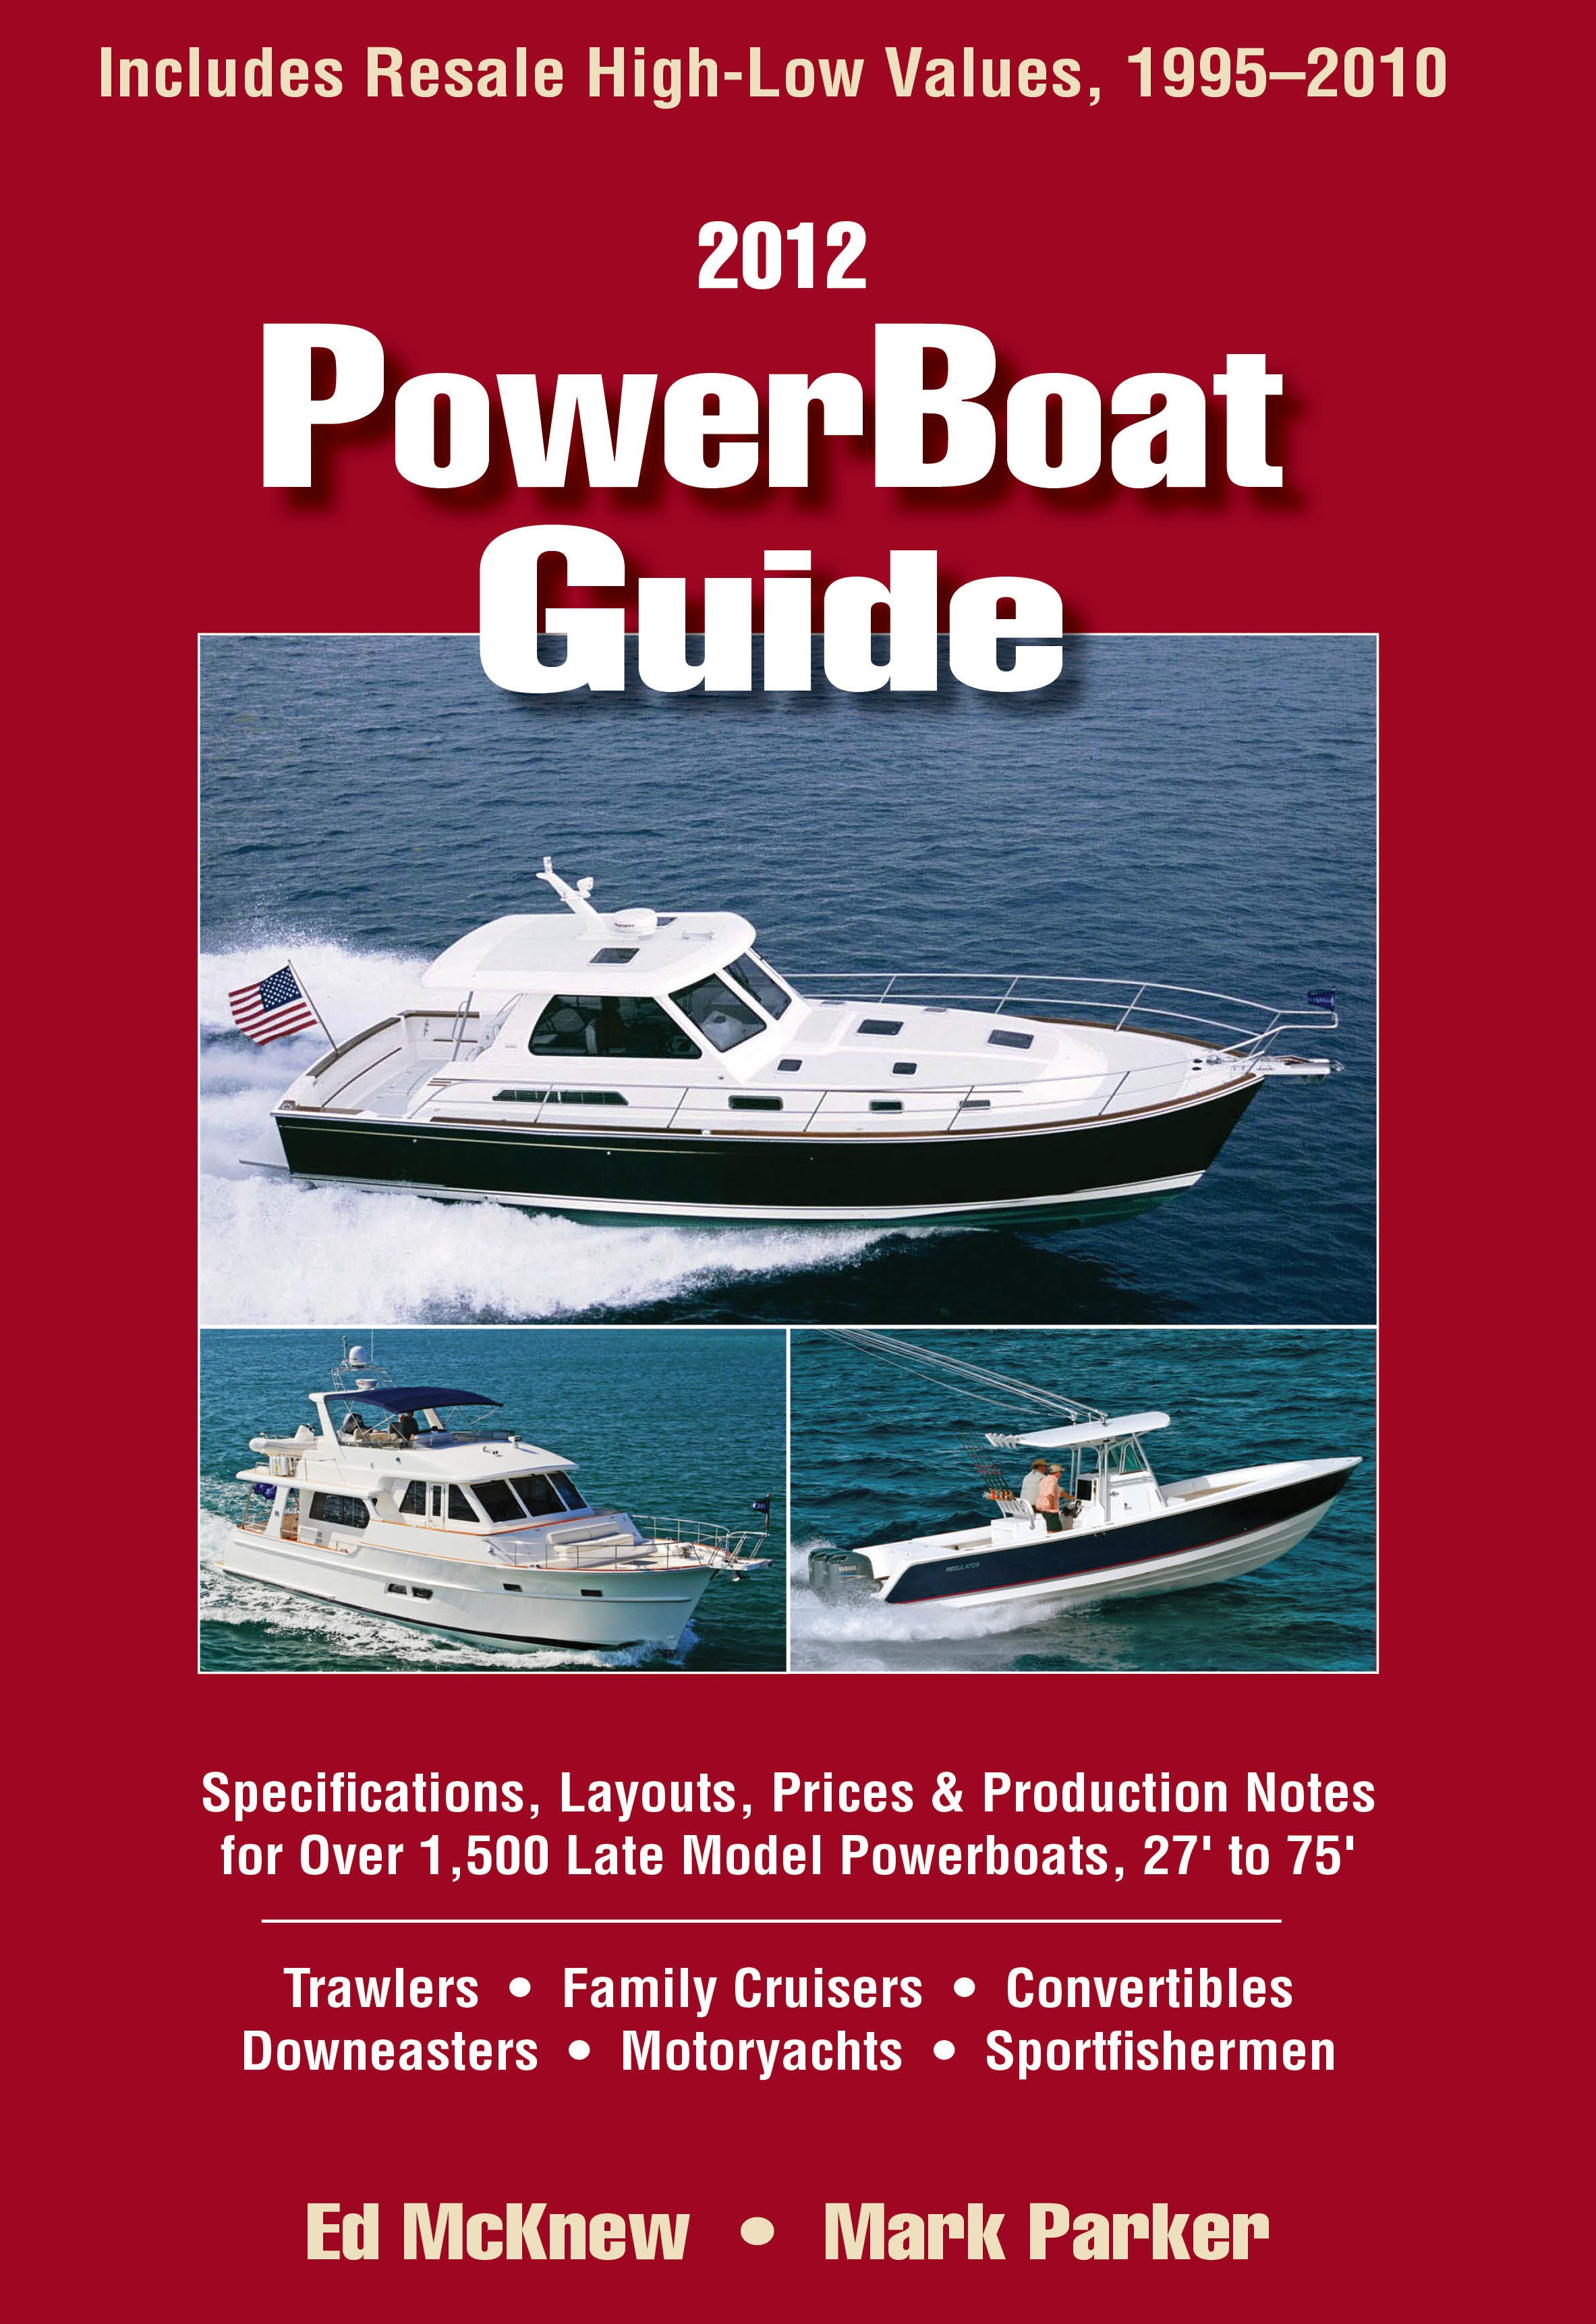 2012 PowerBoat Guide Book Sample Page